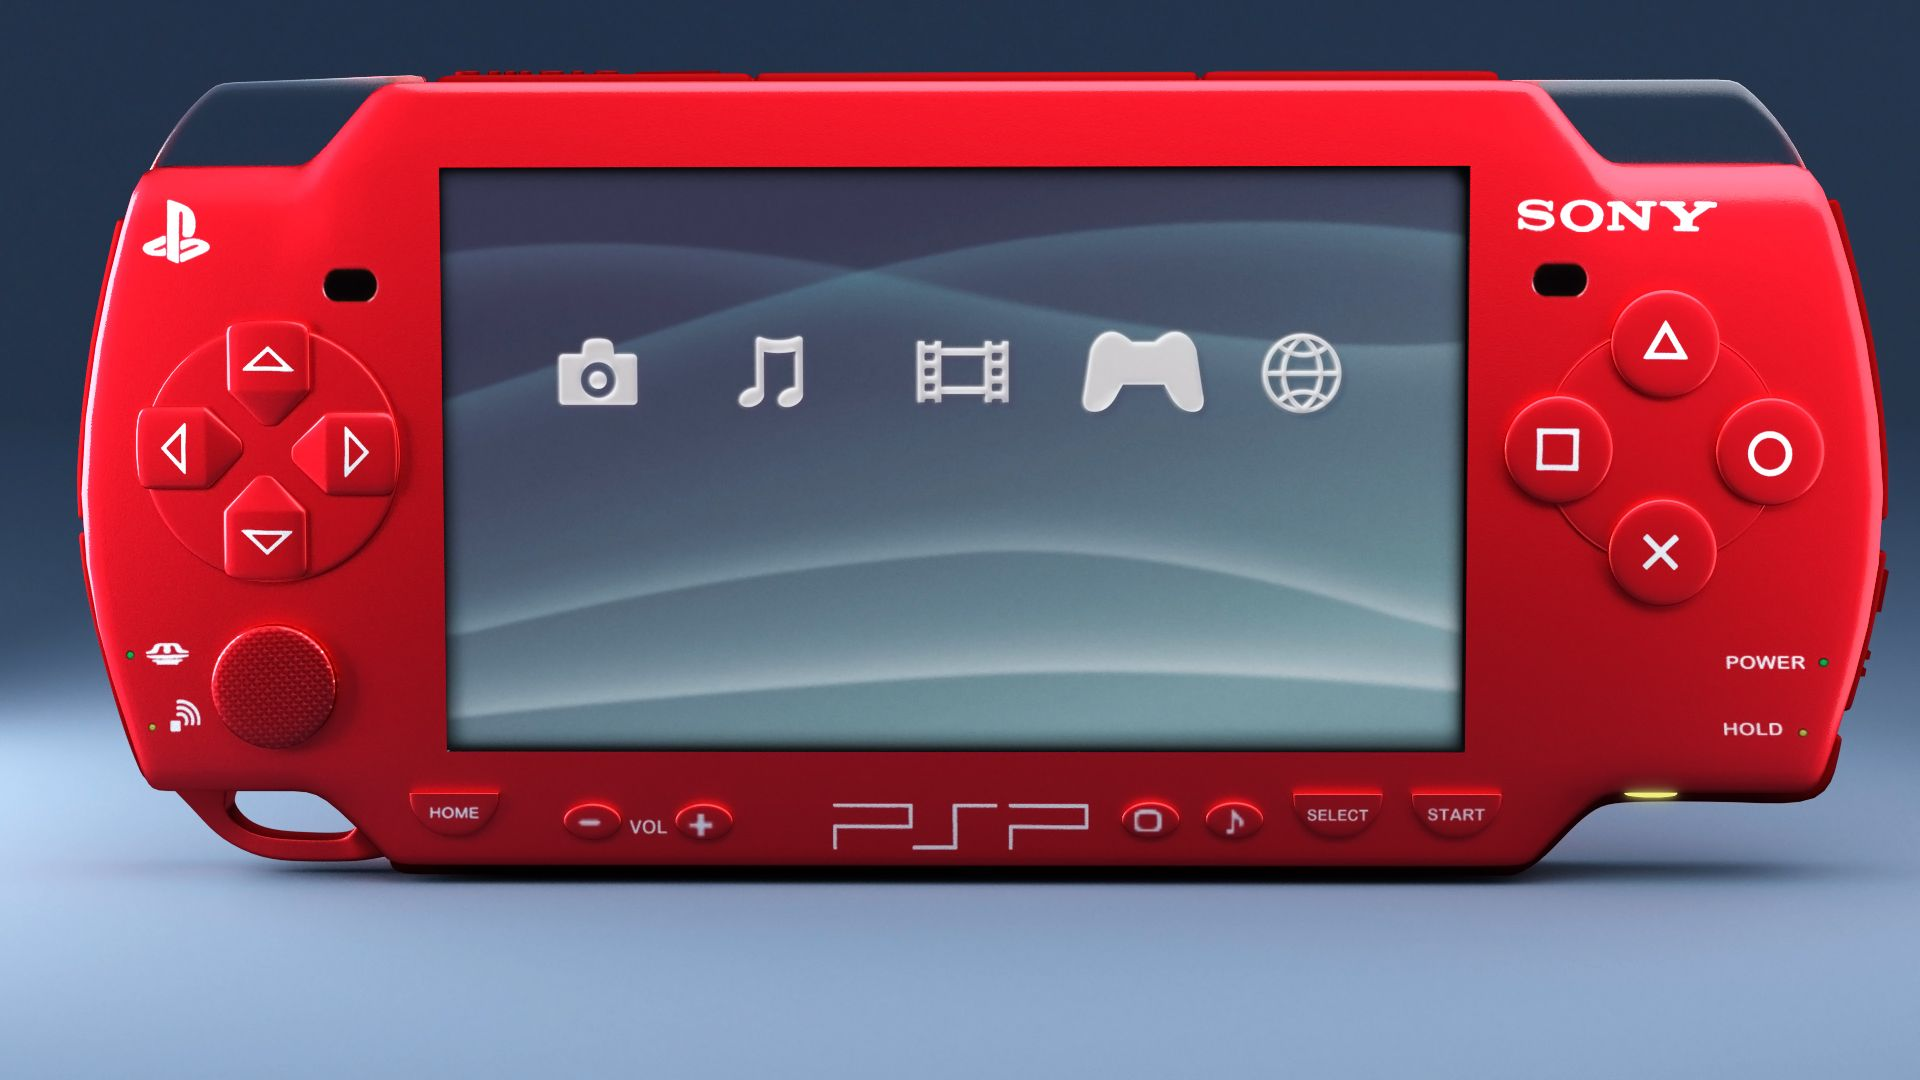 /10-best-psp-games-of-all-time-ranked-by-sales-8qw372u feature image